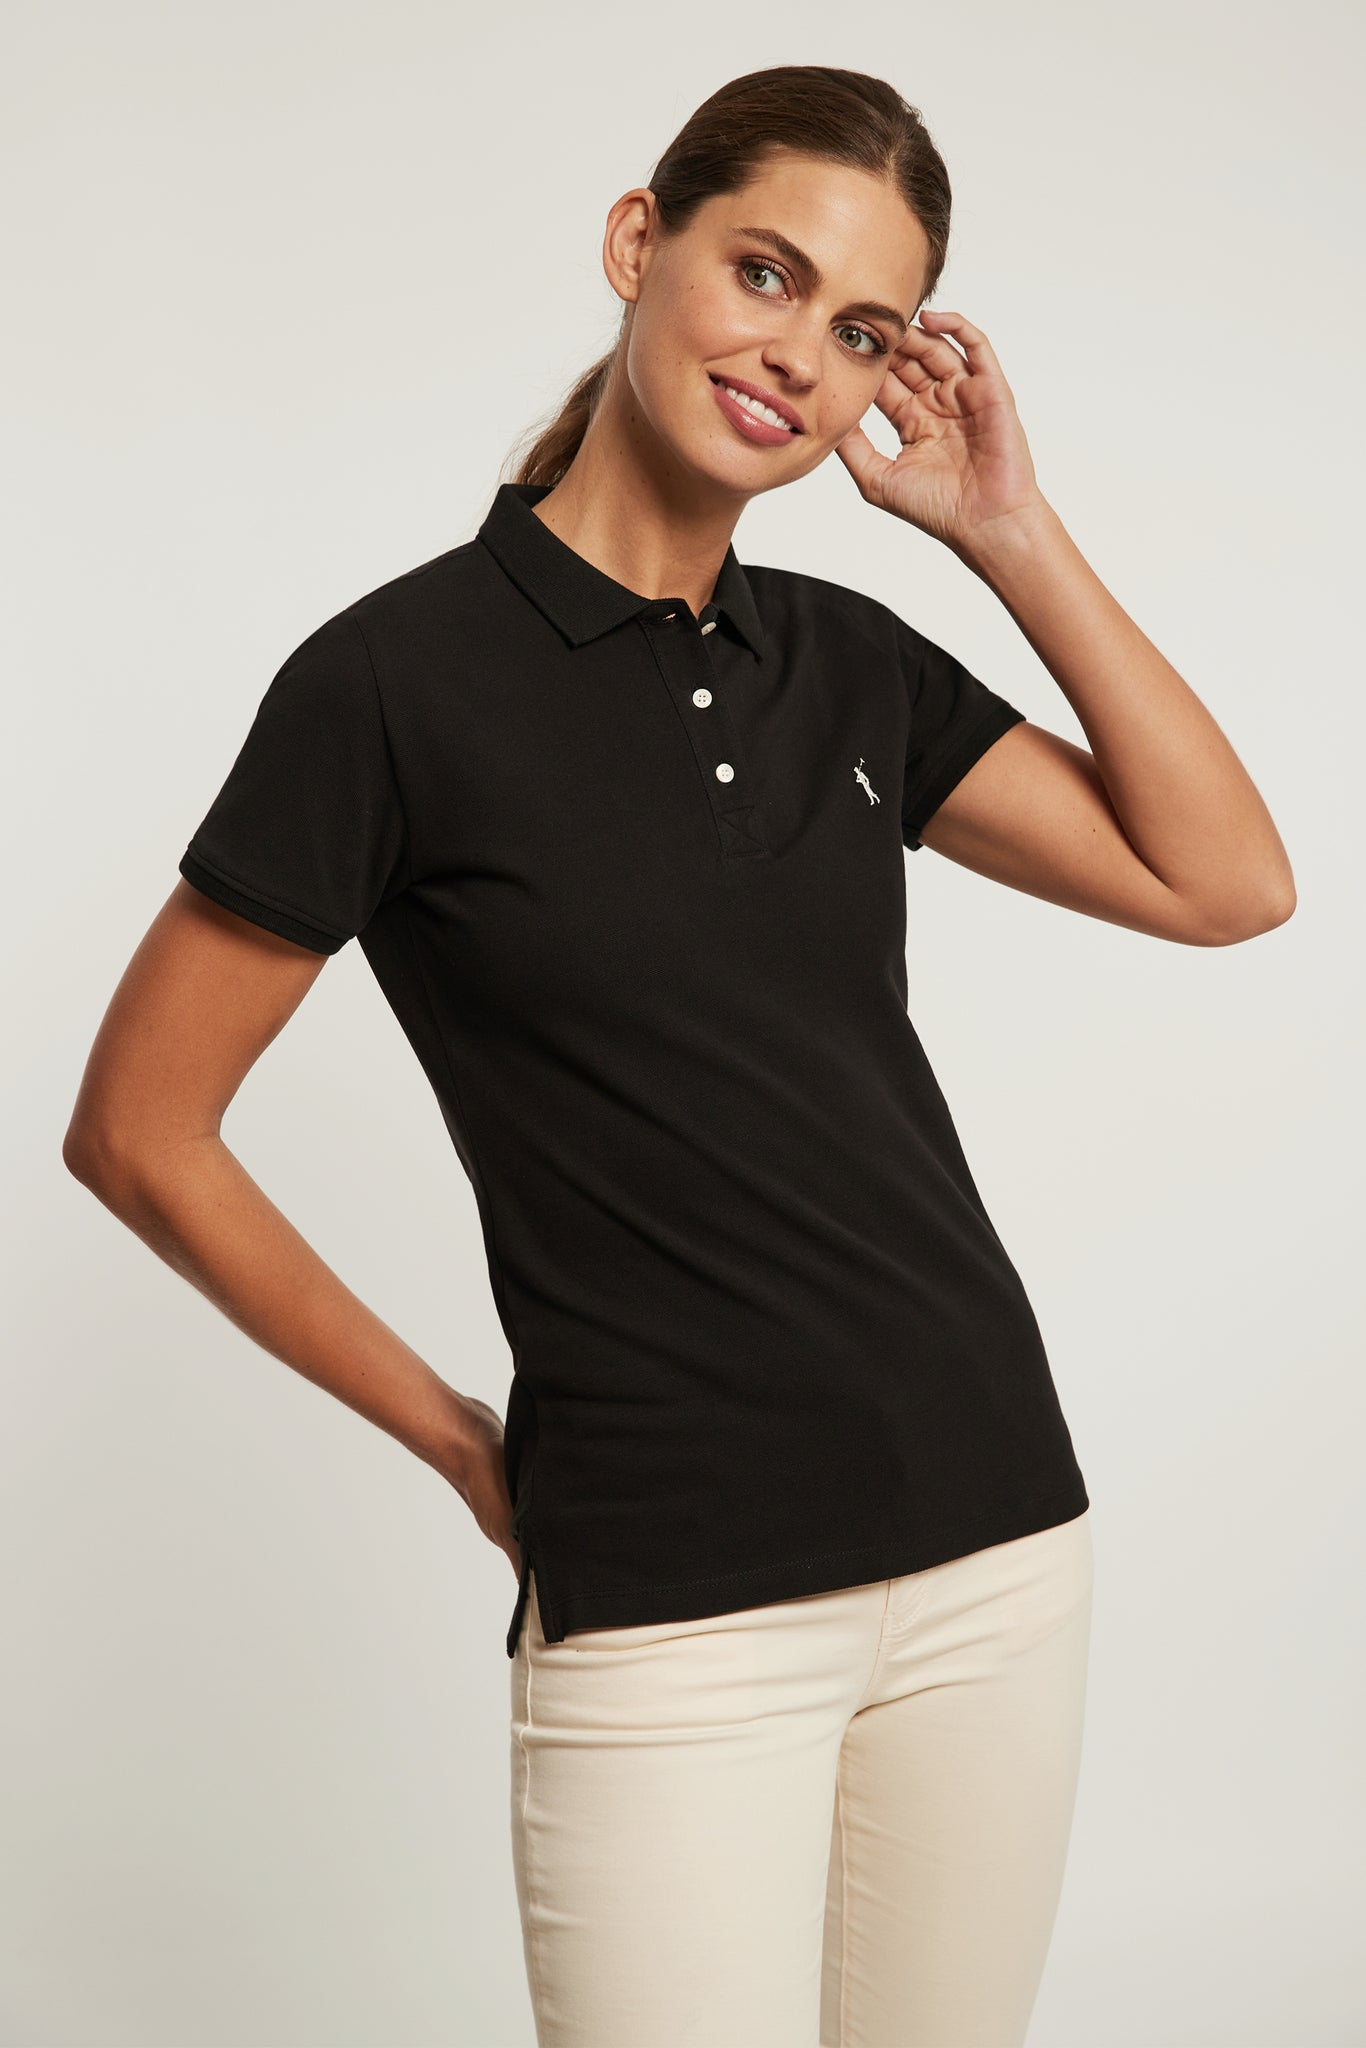 Black organic cotton polo shirt